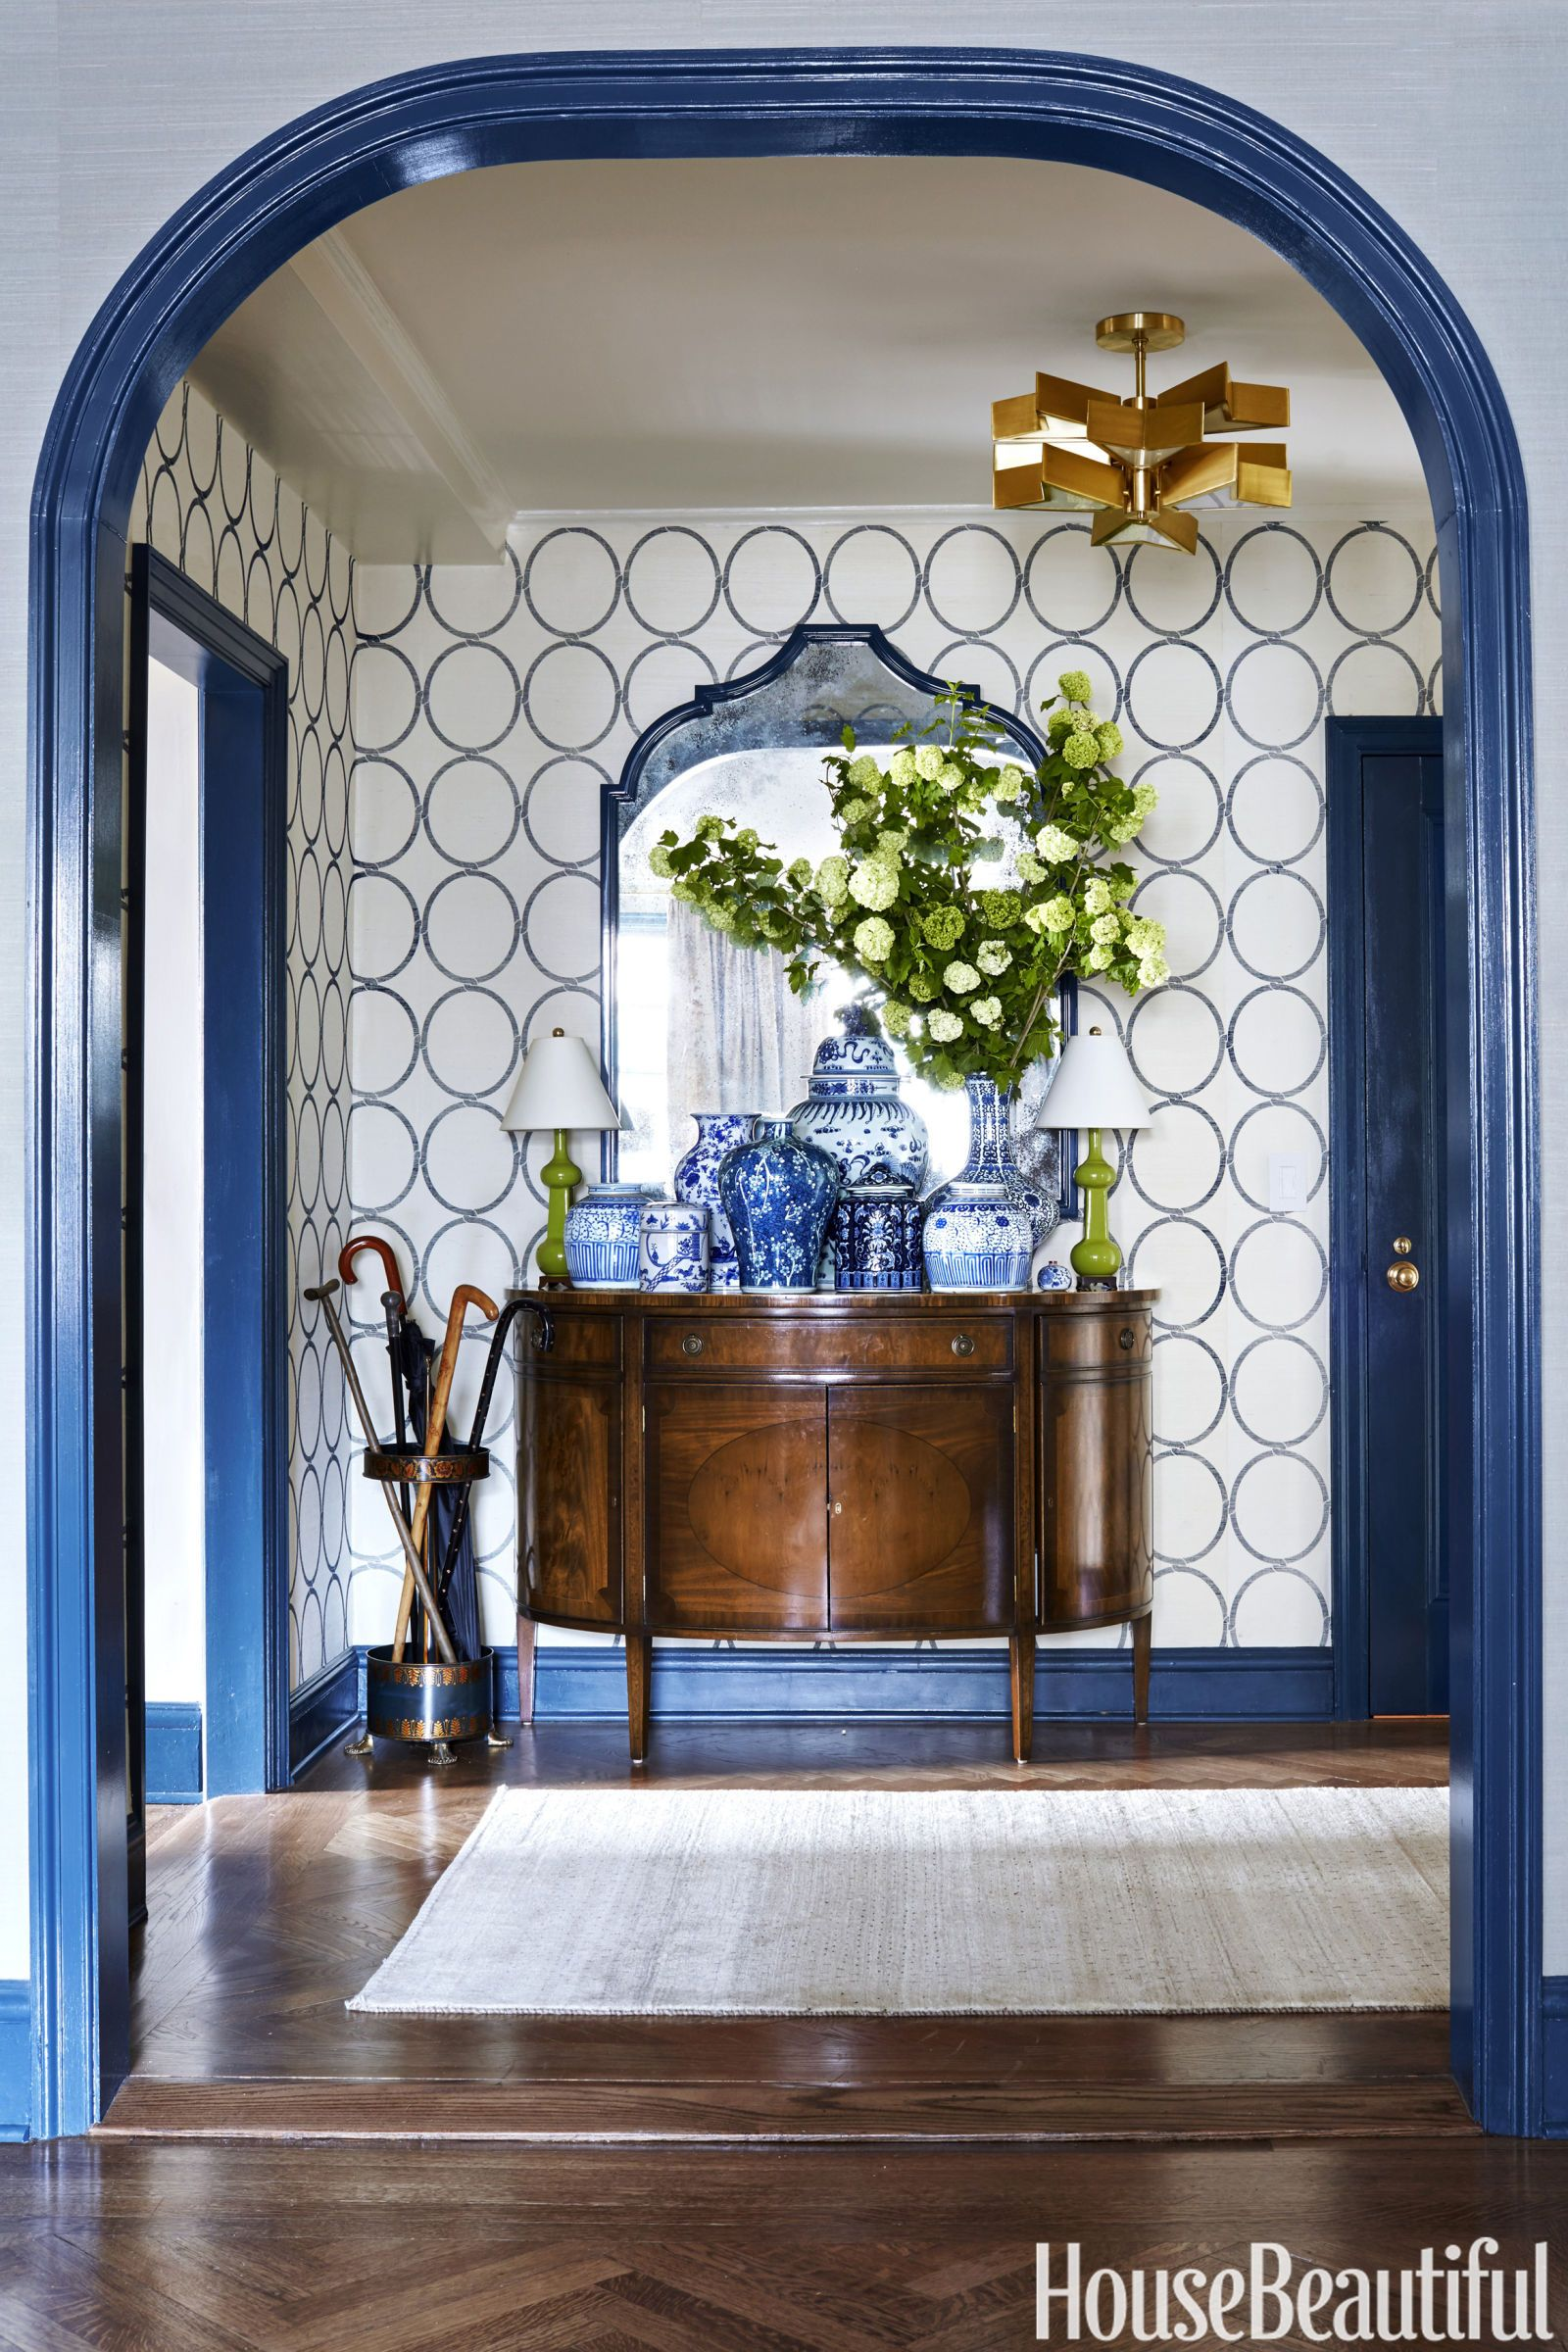 Hallway and stairs wallpaper  Navy Trim Is the Clever Trick That Brings This Apartment Together